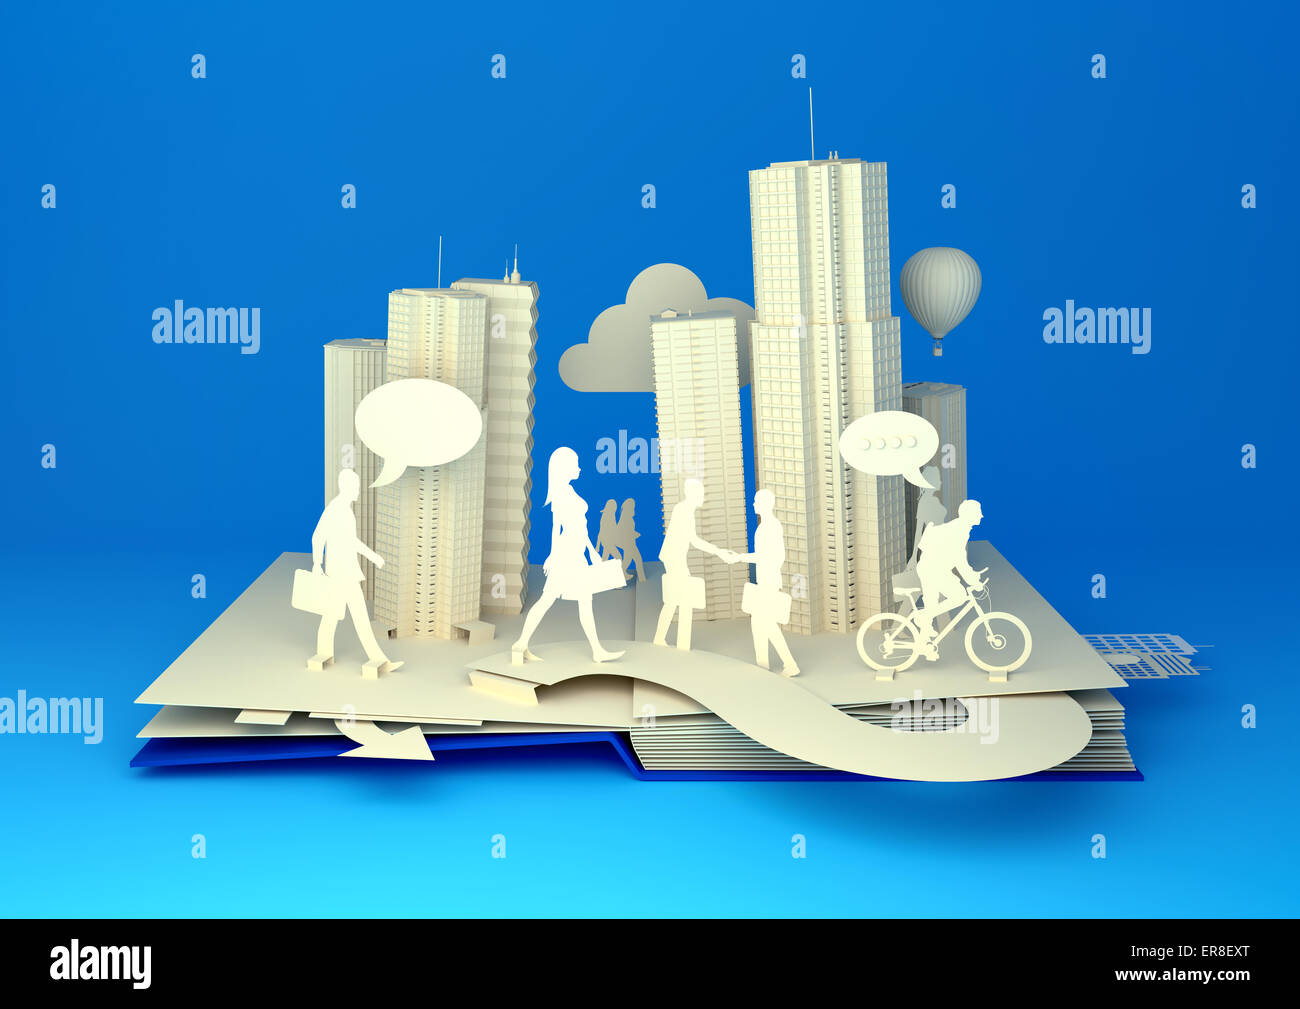 Pop-Up Book - City Lifestyle. Styled 3D pop-up book city with busy urban city people going about their business. - Stock Image